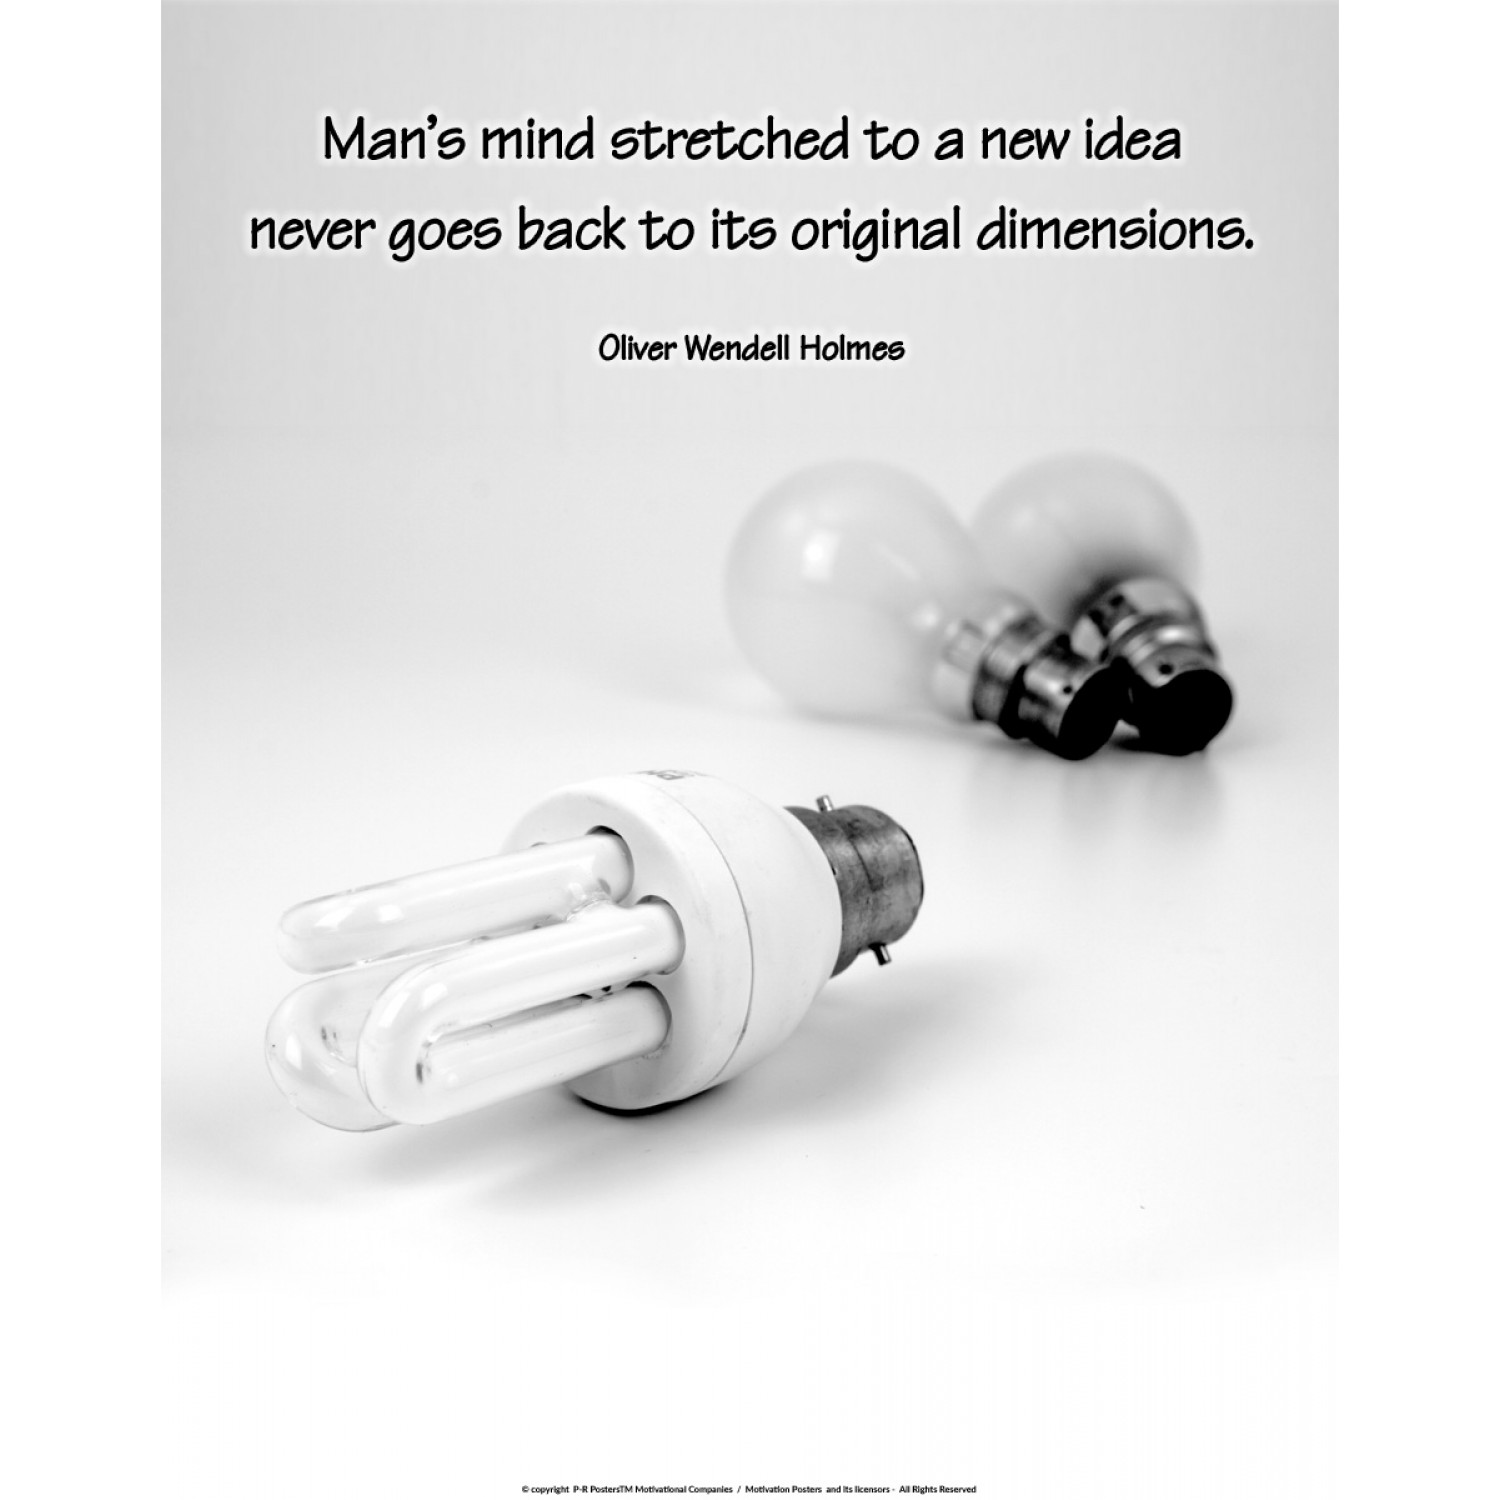 Man's mind stretched to a new idea...